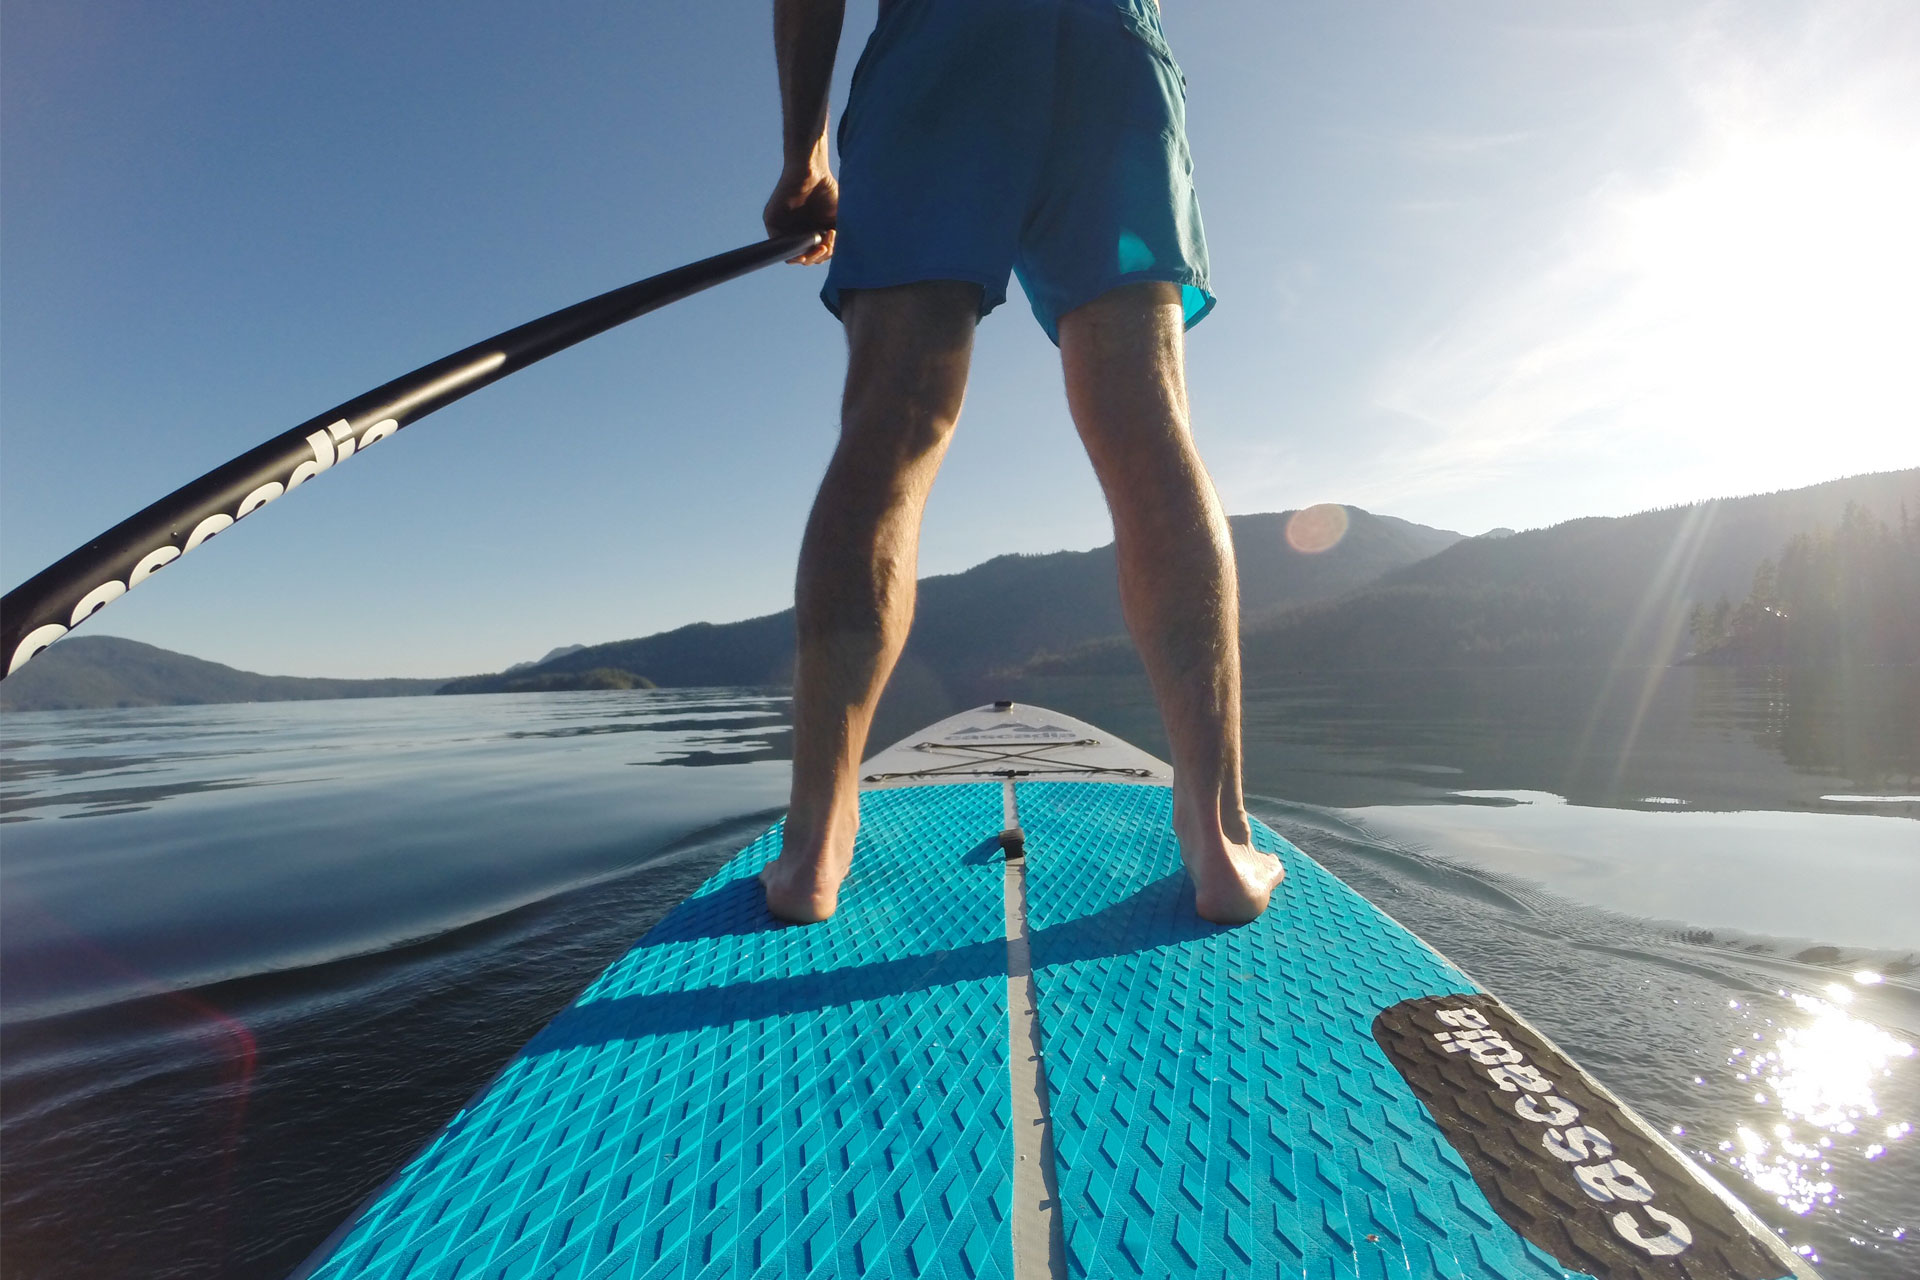 Doctor Rory Paddleboard Picture